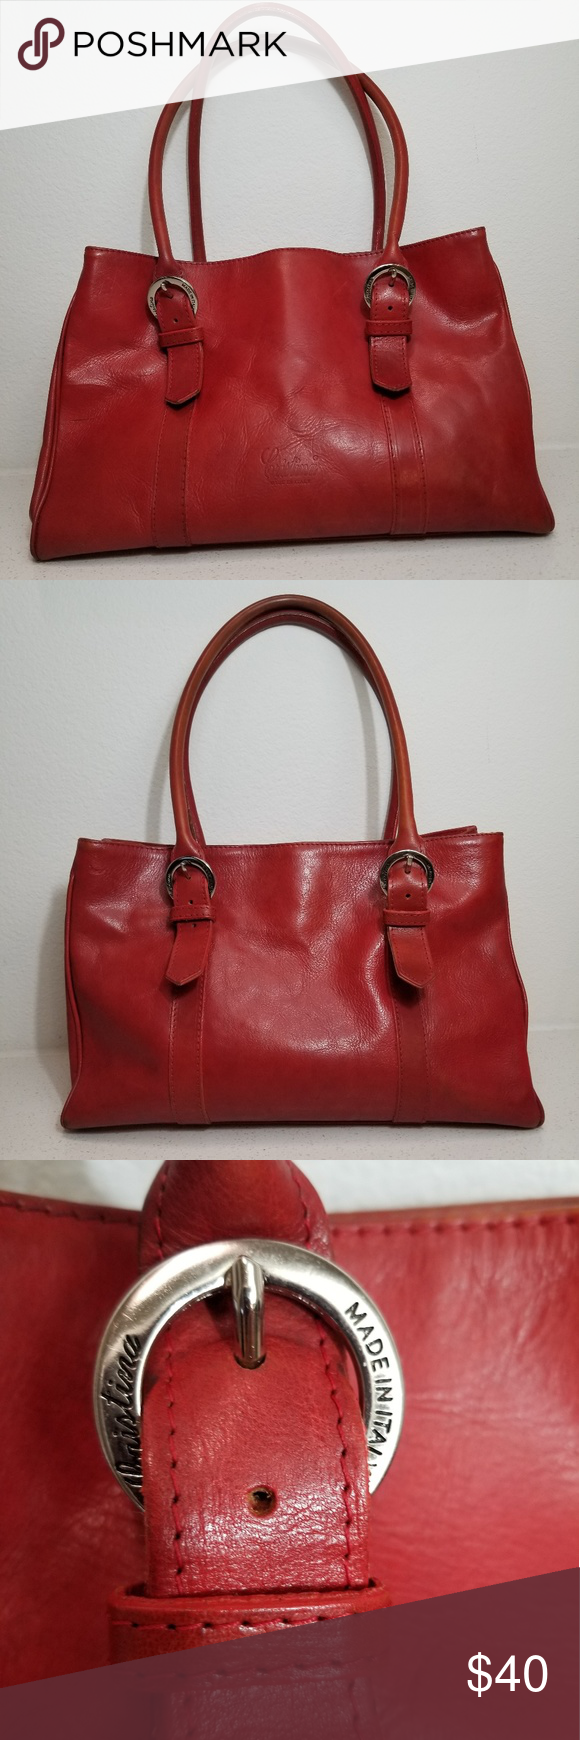 Christina Made In Italy Leather Bag This Is A Red